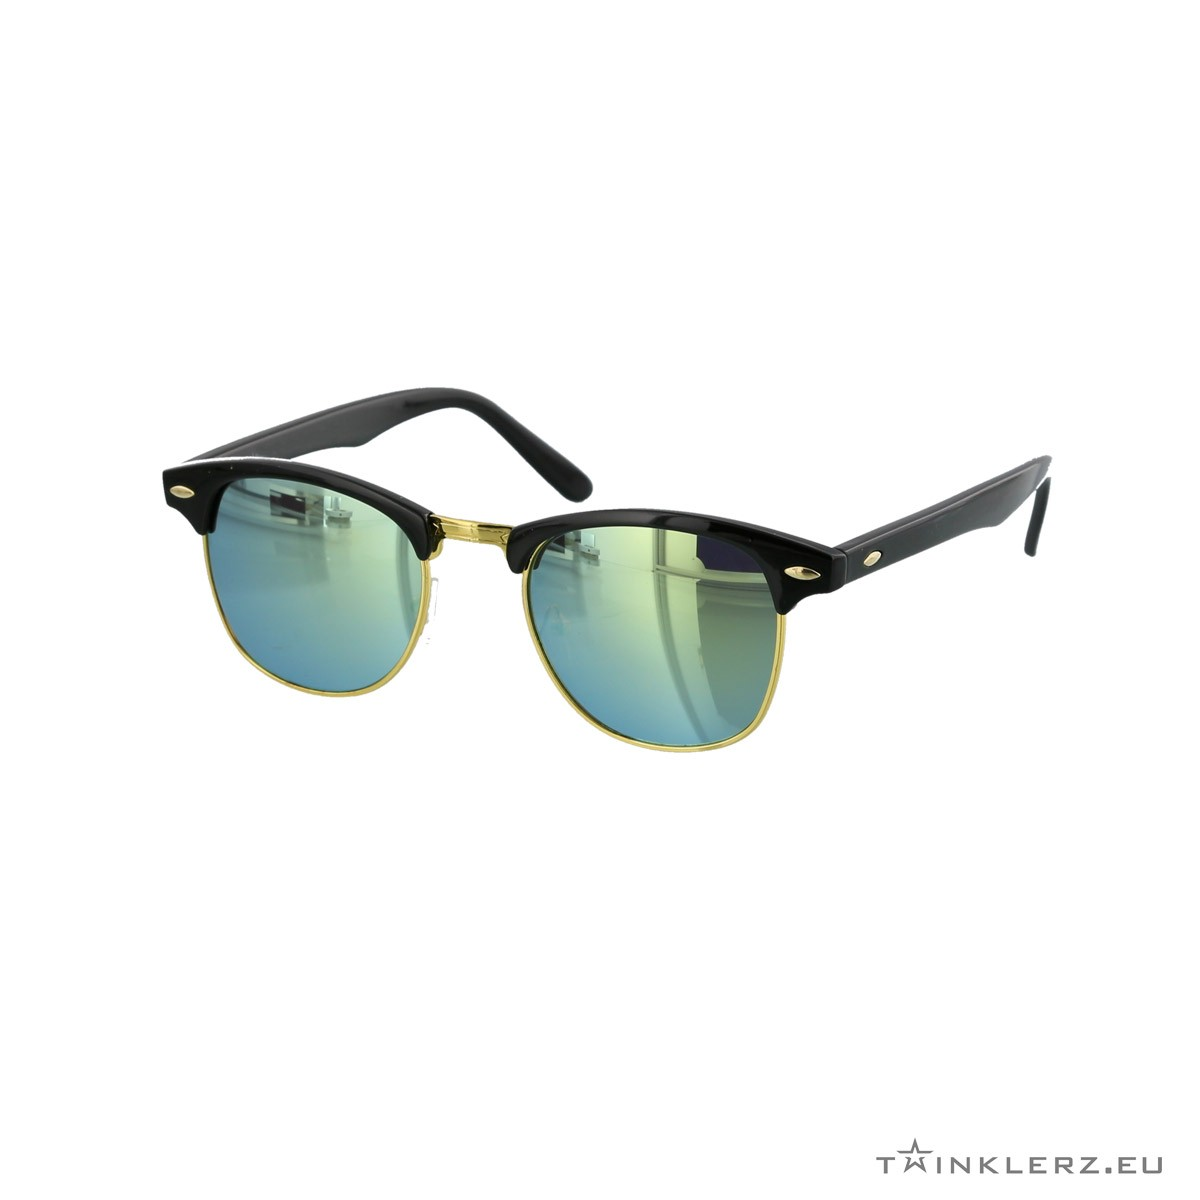 Black clubmaster classic sunglasses yellow green mirrored lenses